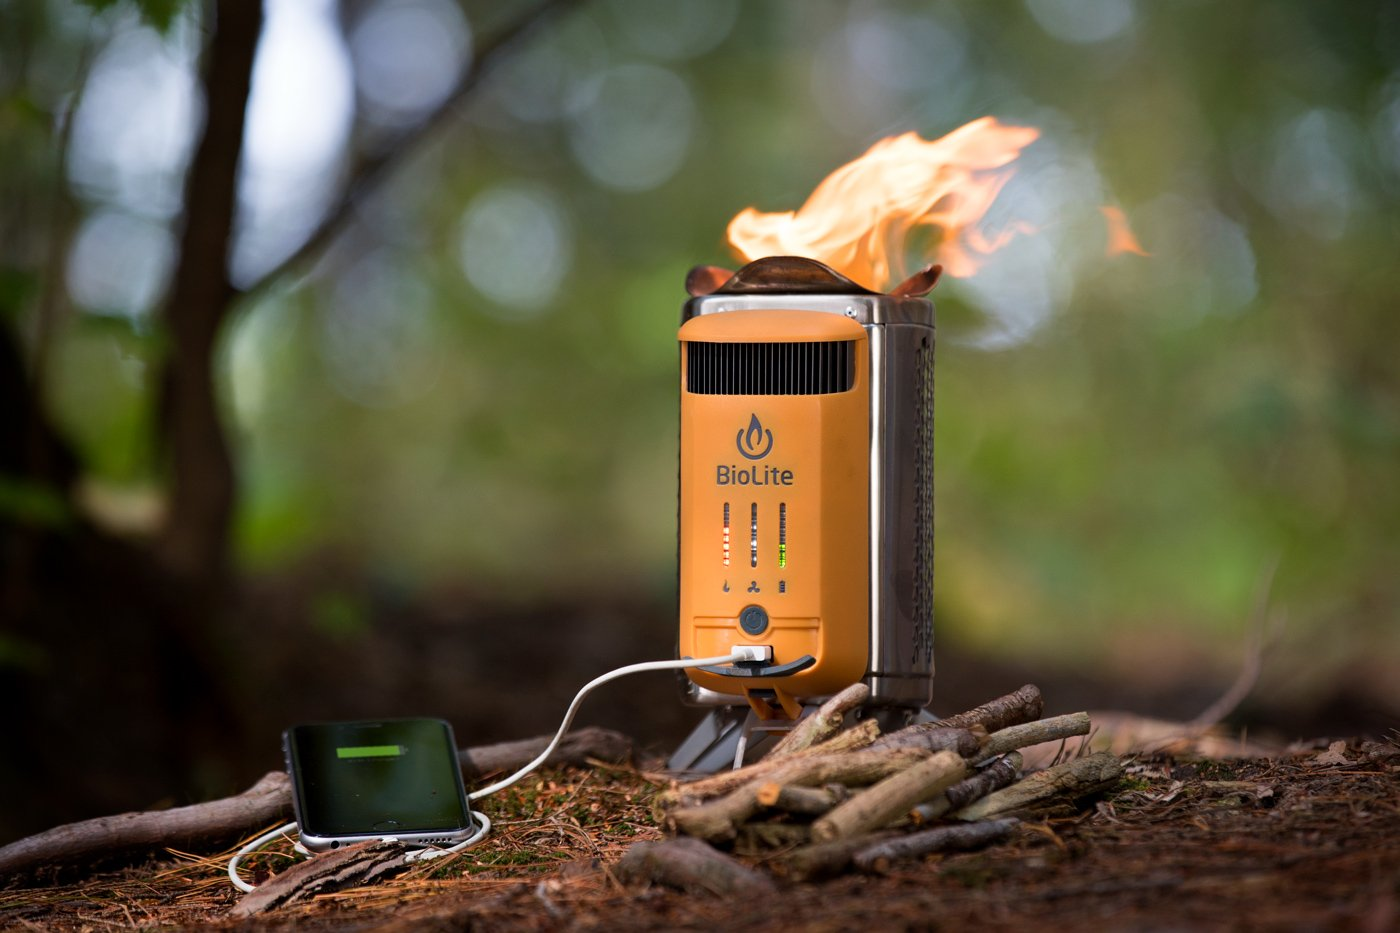 BioLite CampStove 2- Wood-Burning Small Lightweight Stove, USB FlexLight, Fire Starter, Generates 3W of Electricity for USB Charging Using Excess Heat, 5 x 5 x 8.3 Inches, Silver/Yellow (CSC1001) by BioLite (Image #5)